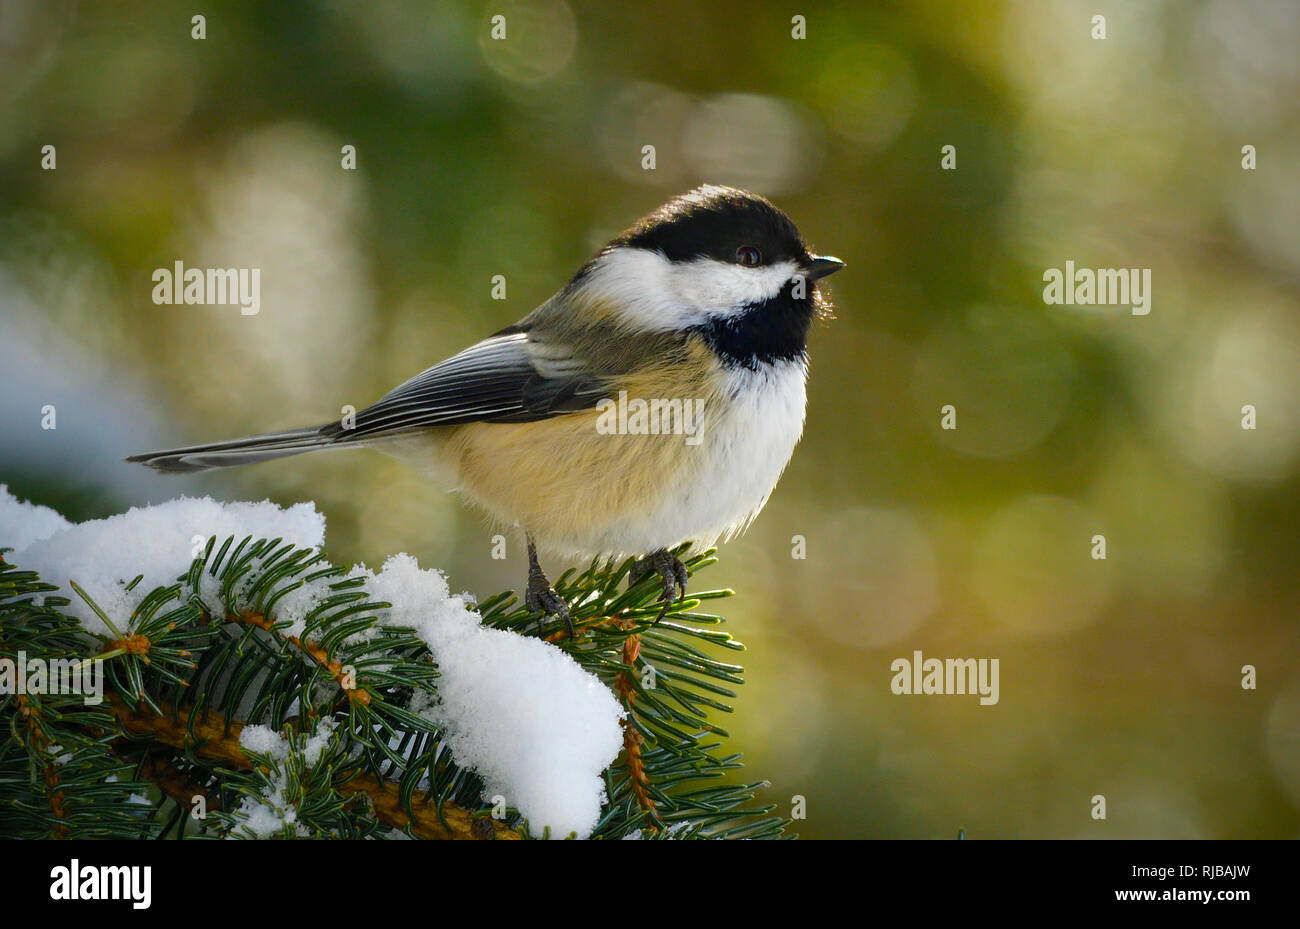 A side view of a wild Black-capped chickadee  'Parus gambeli', perched on a spruce tree branch in rural Alberta Canada. - Stock Image